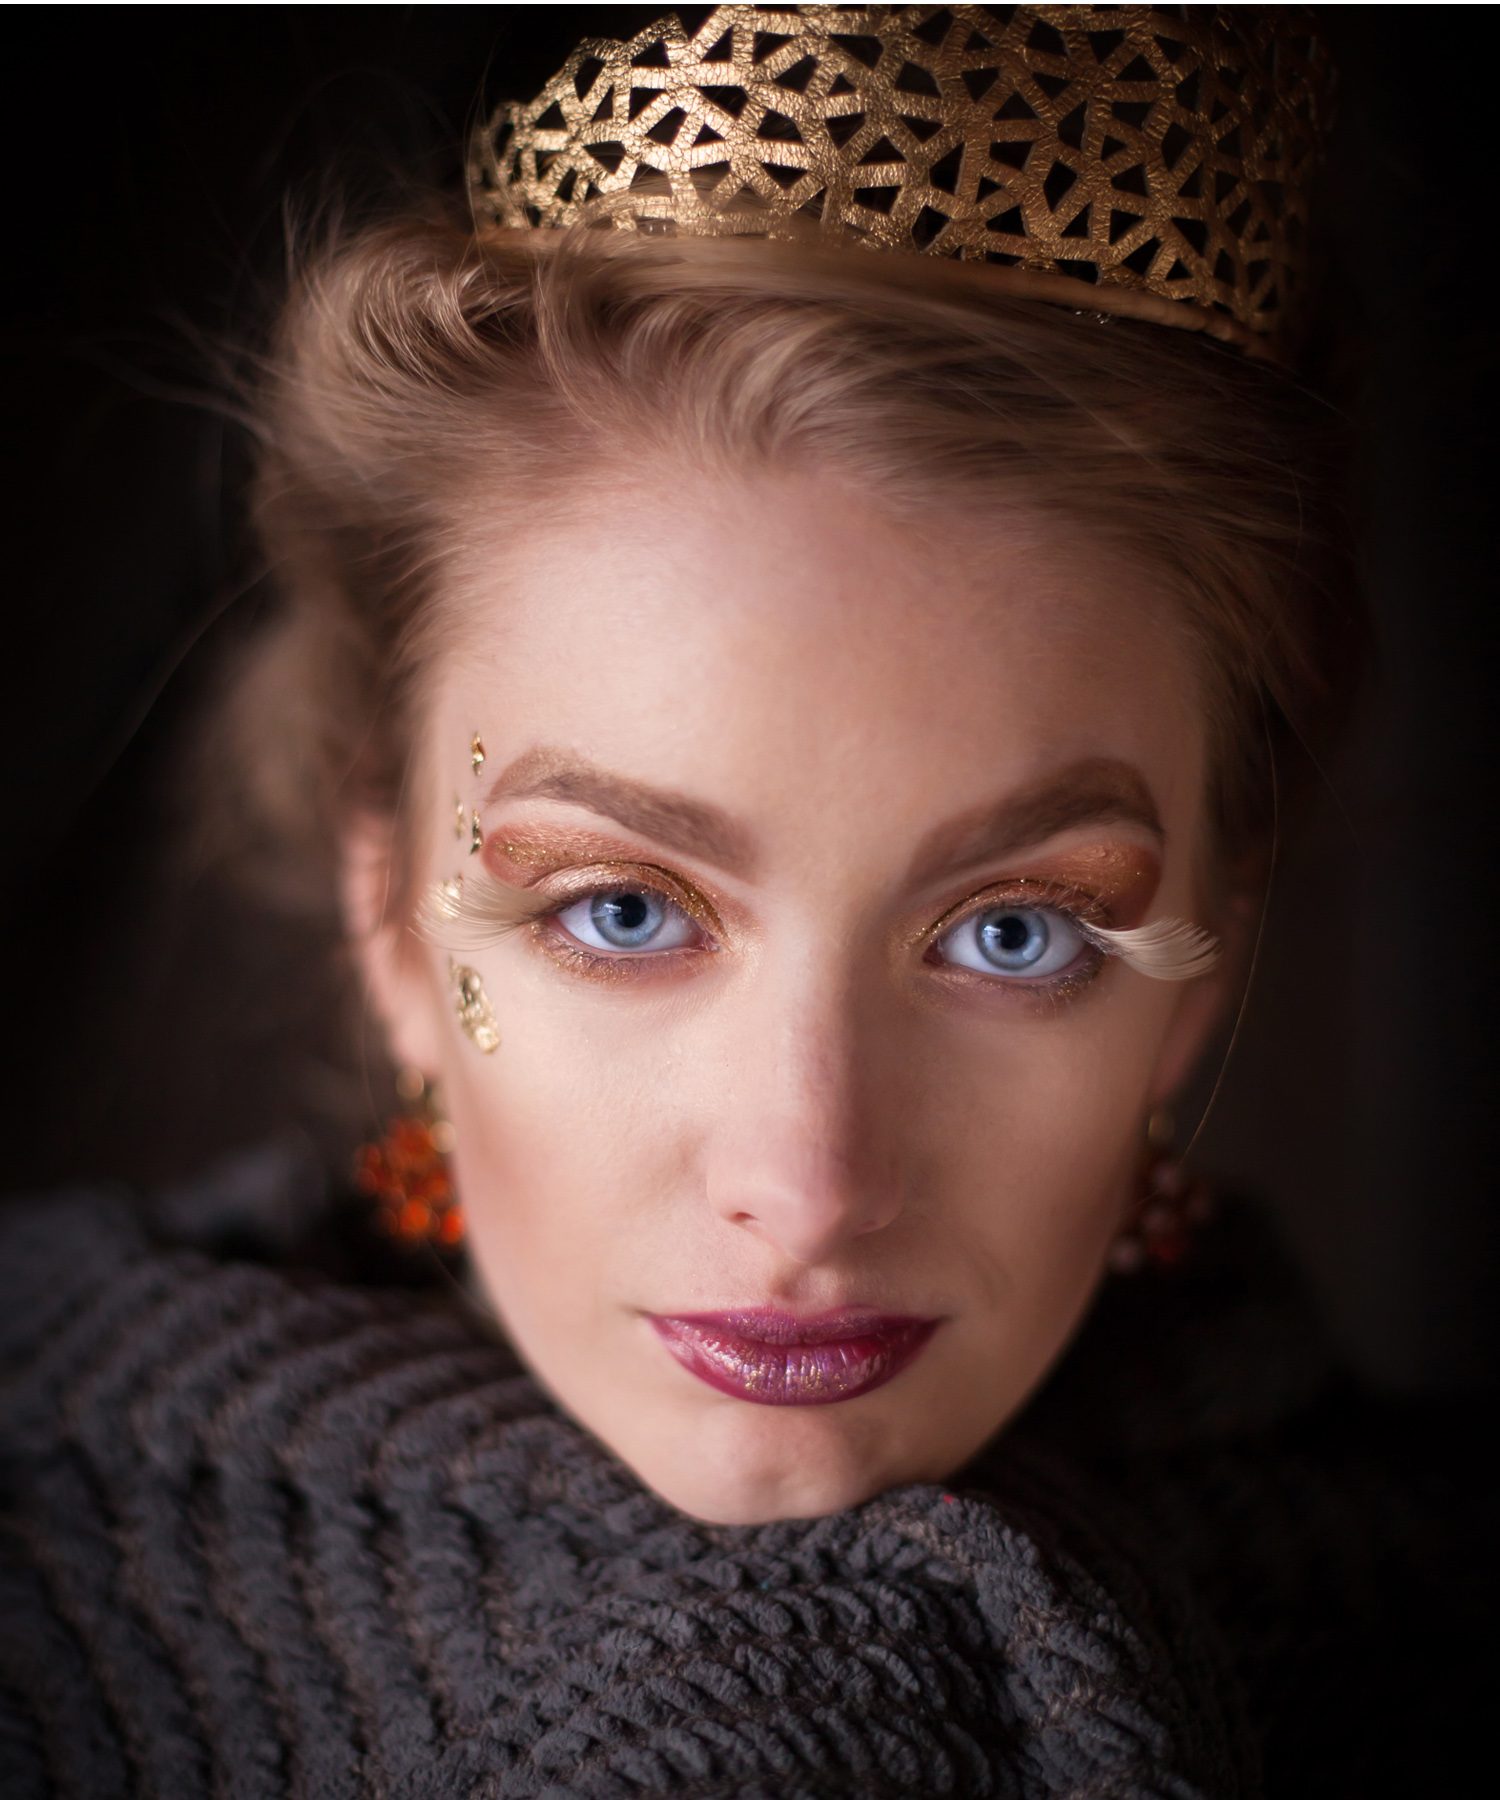 Close-up Glamour Portrait with handmade gold tiara, by Denver photographer Jennifer Koskinen | Merritt Portrait Studio